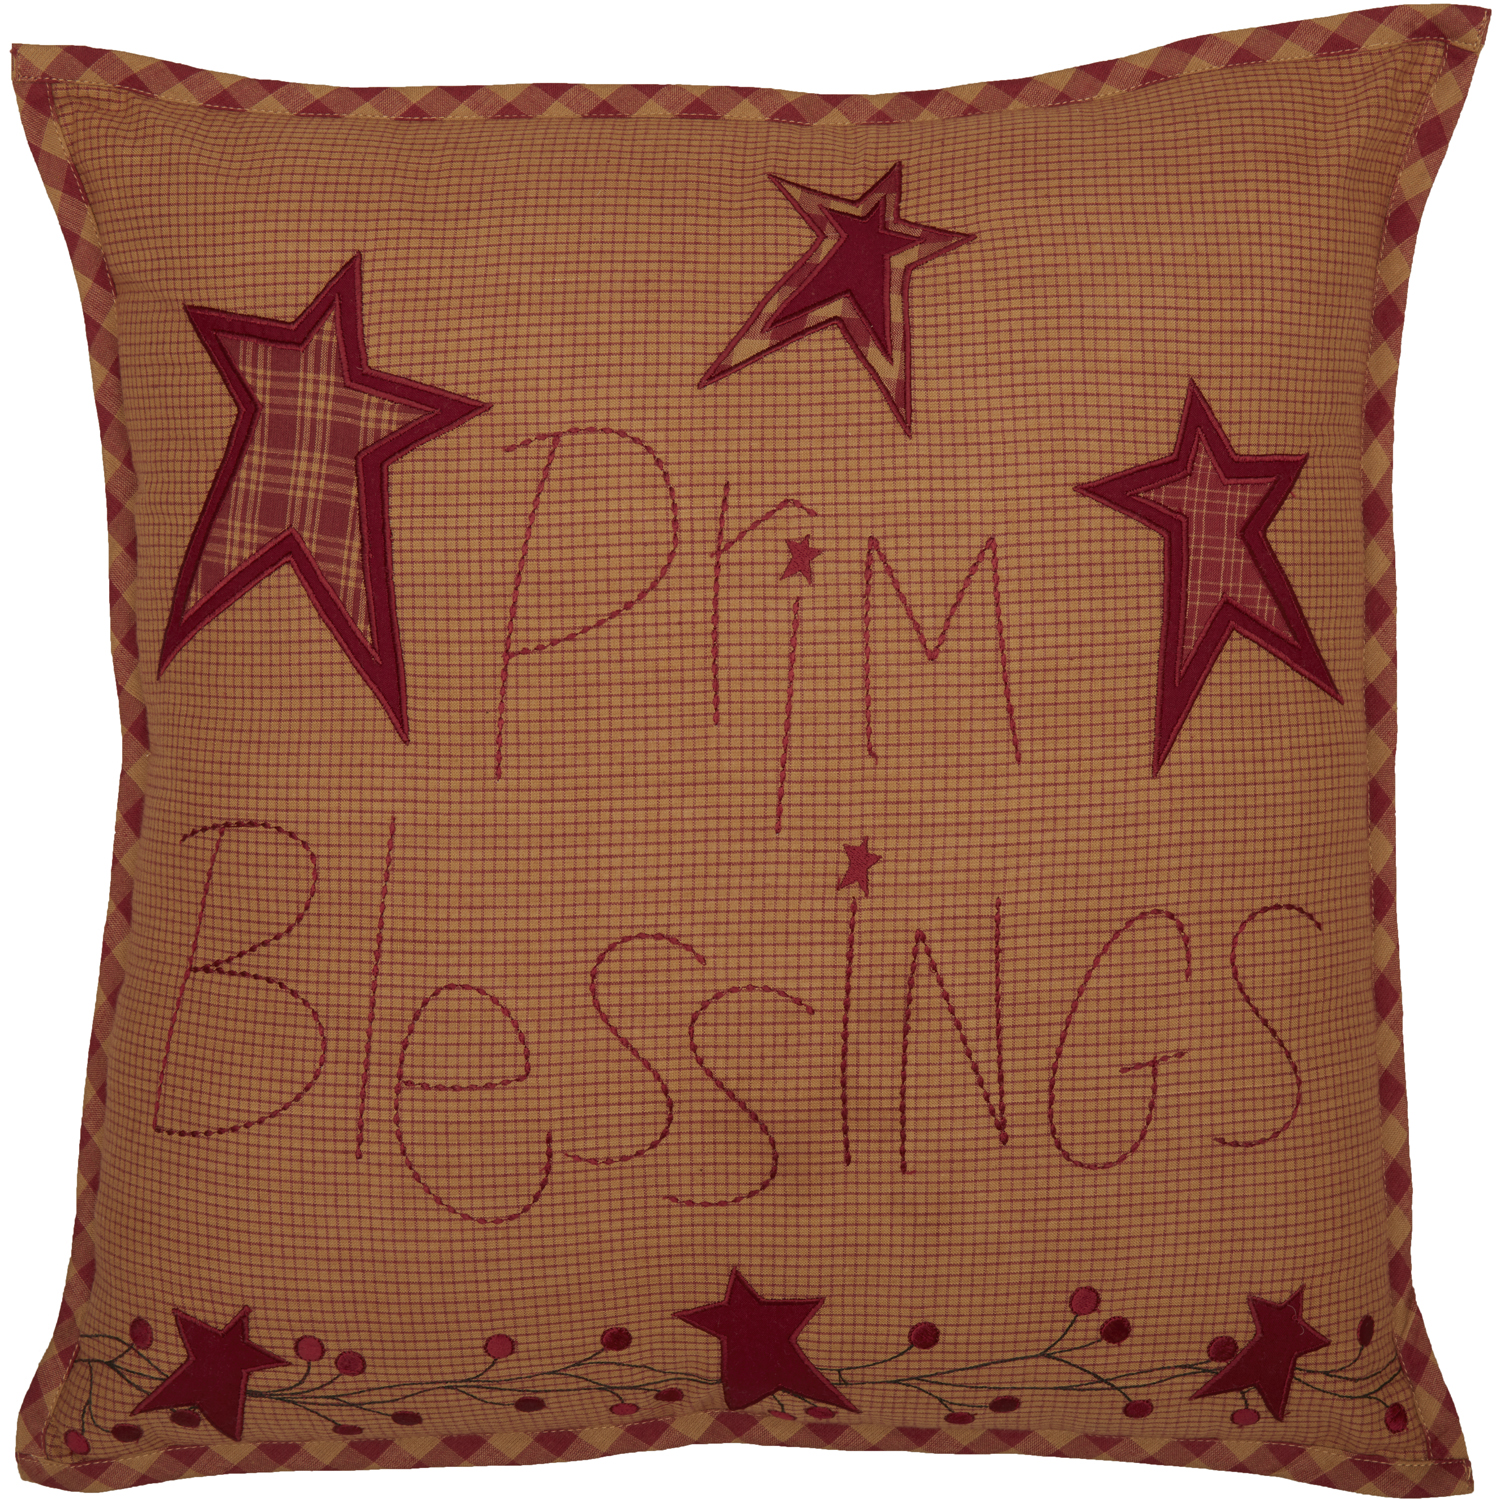 Ninepatch Star Prim Blessings Pillow 18x18